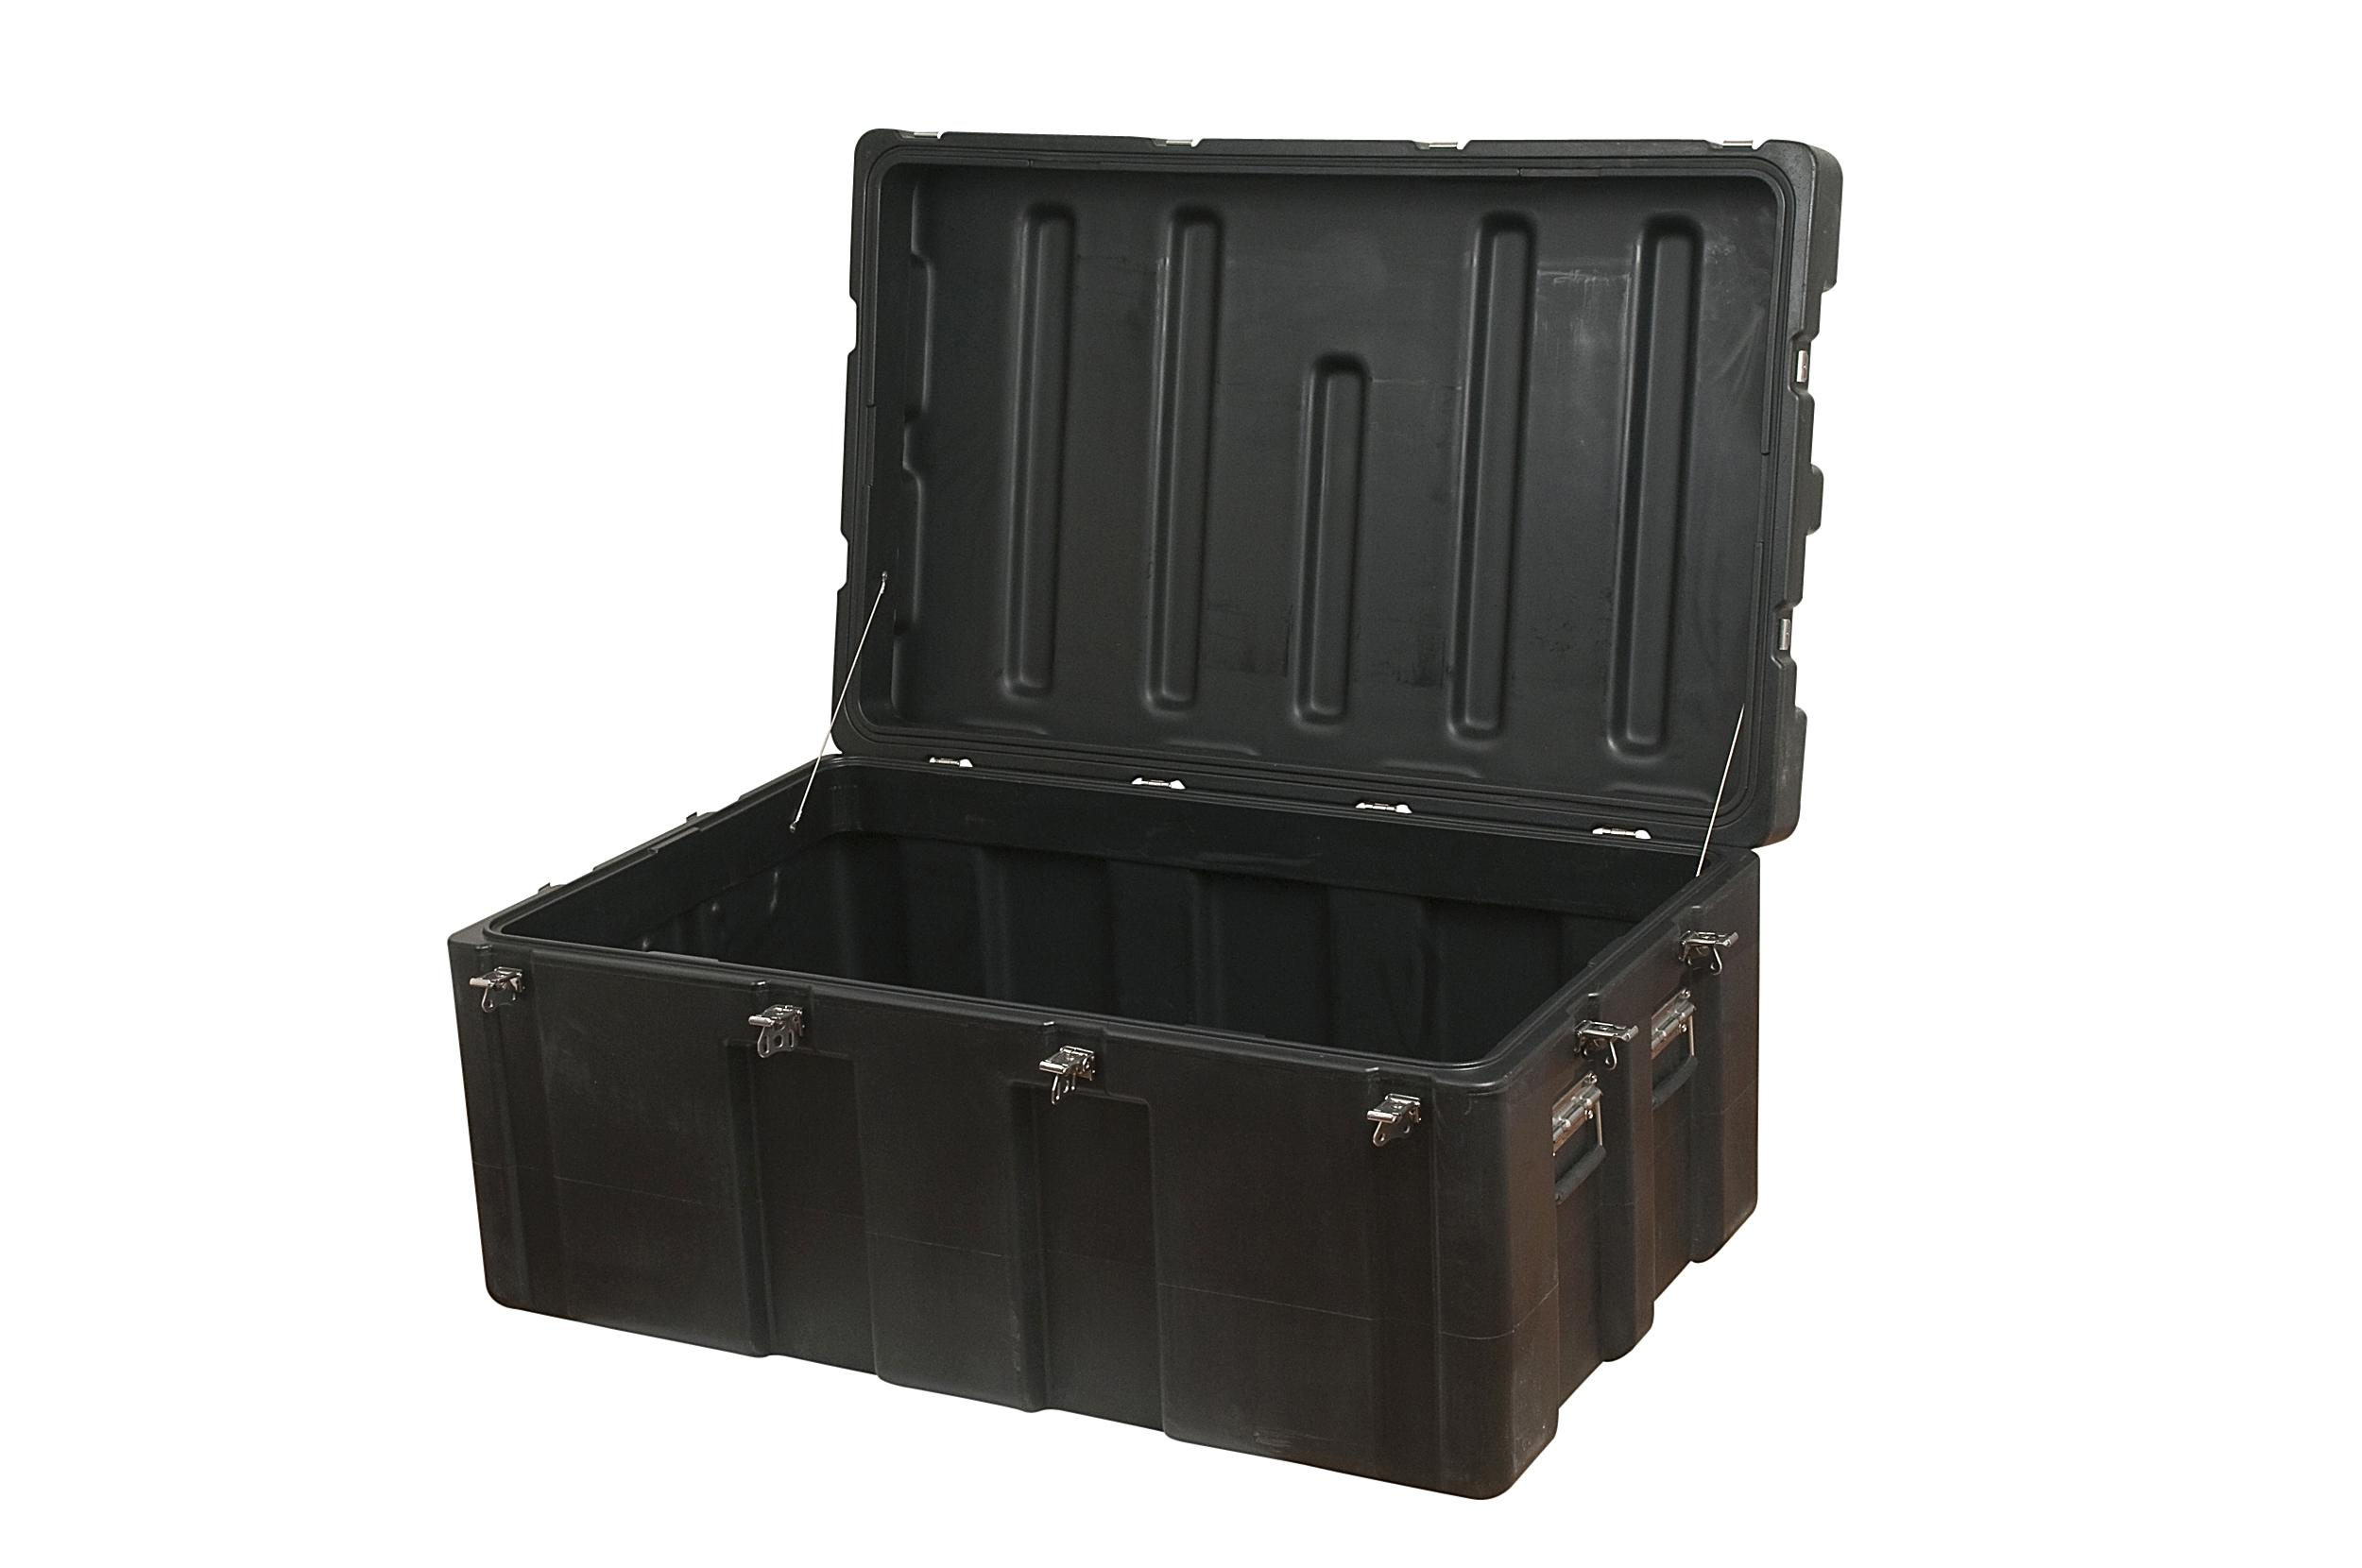 Stacking Dining Room Chairs Tool Box Case Storage Box Army Trunk 4wd Ute Chest